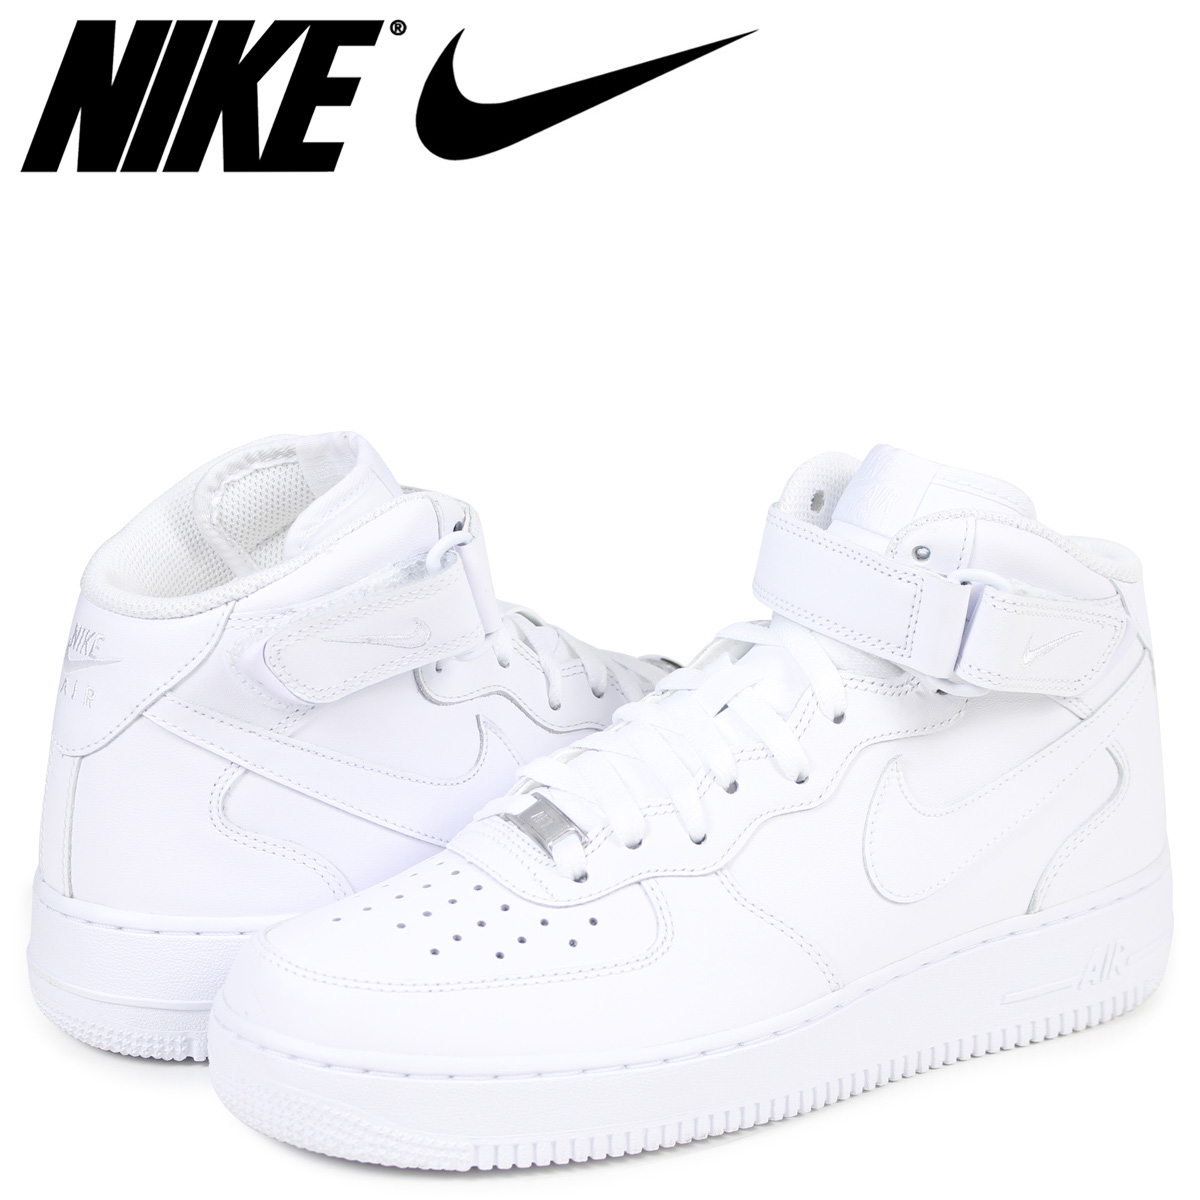 premium selection 3628a 9bfe9 NIKE AIR FORCE 1 MID 07 Nike air force 1 sneakers men white 315,123-111